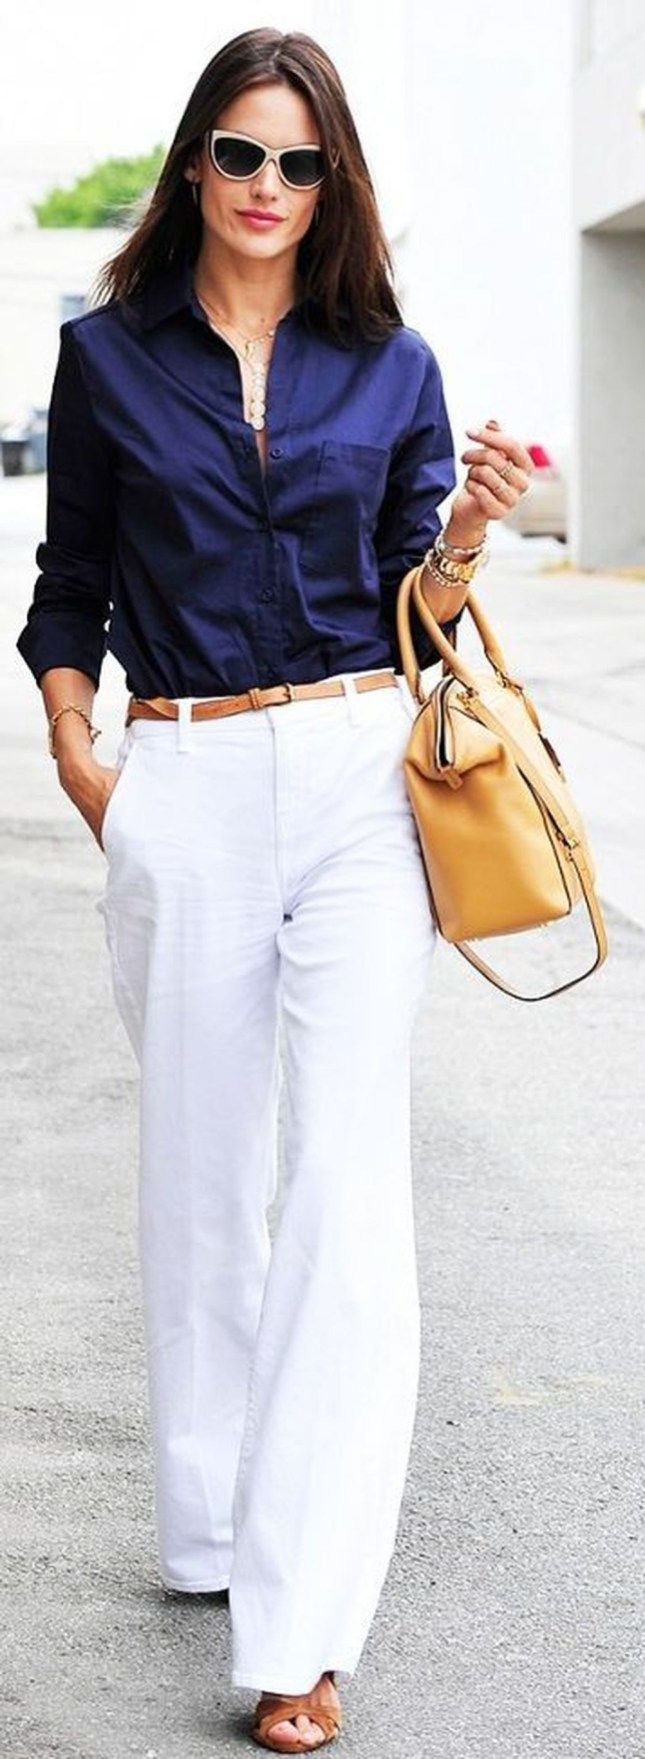 Casual Chic Summer Outfit Ideas For 2018 25